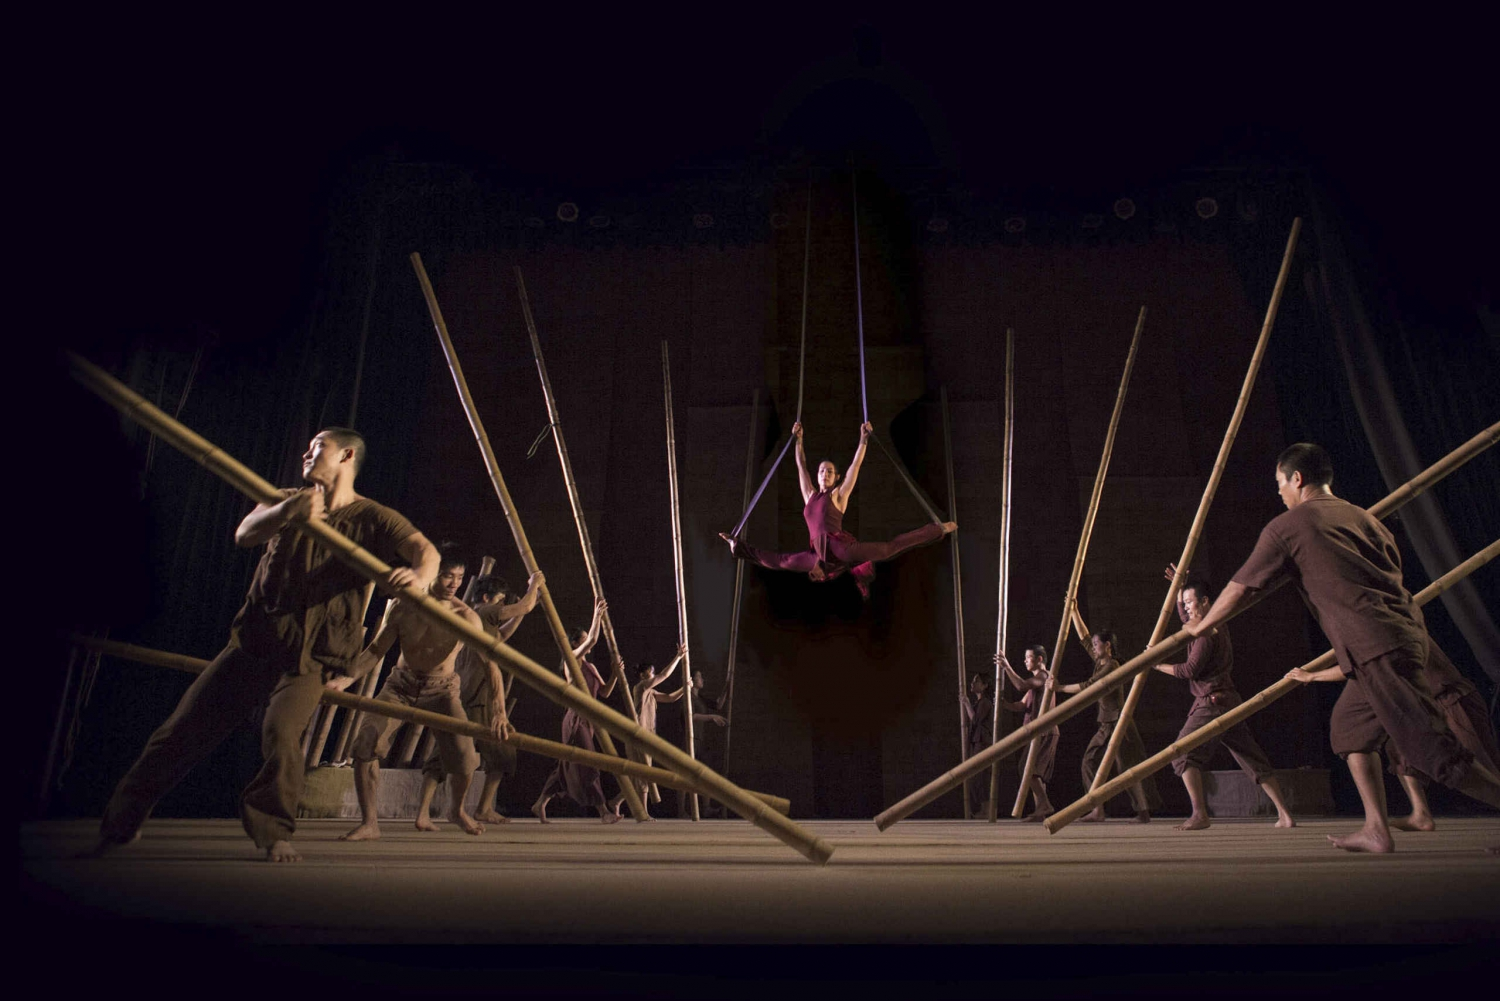 Lang Toi: Vietnamese Culture Show at Vietnam Tuong Theater